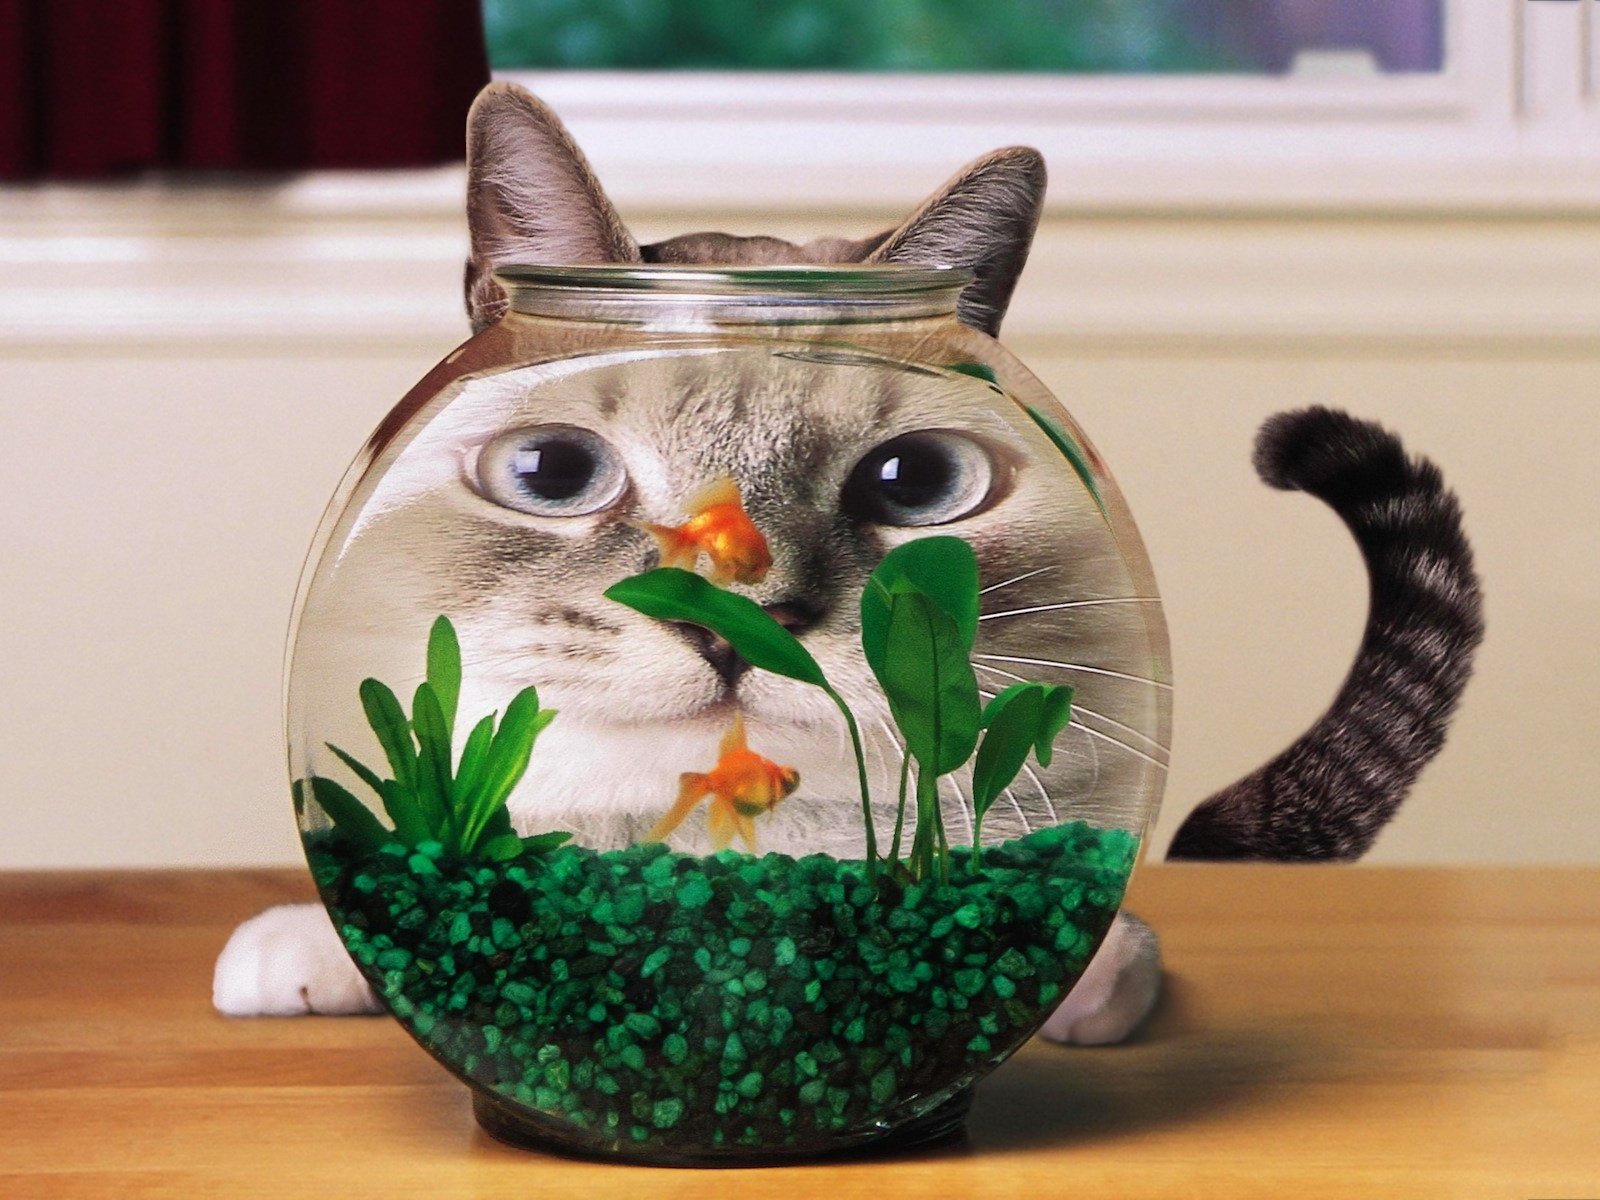 Cat goldfish aquarium Wallpaper in 1600x1200 Normal